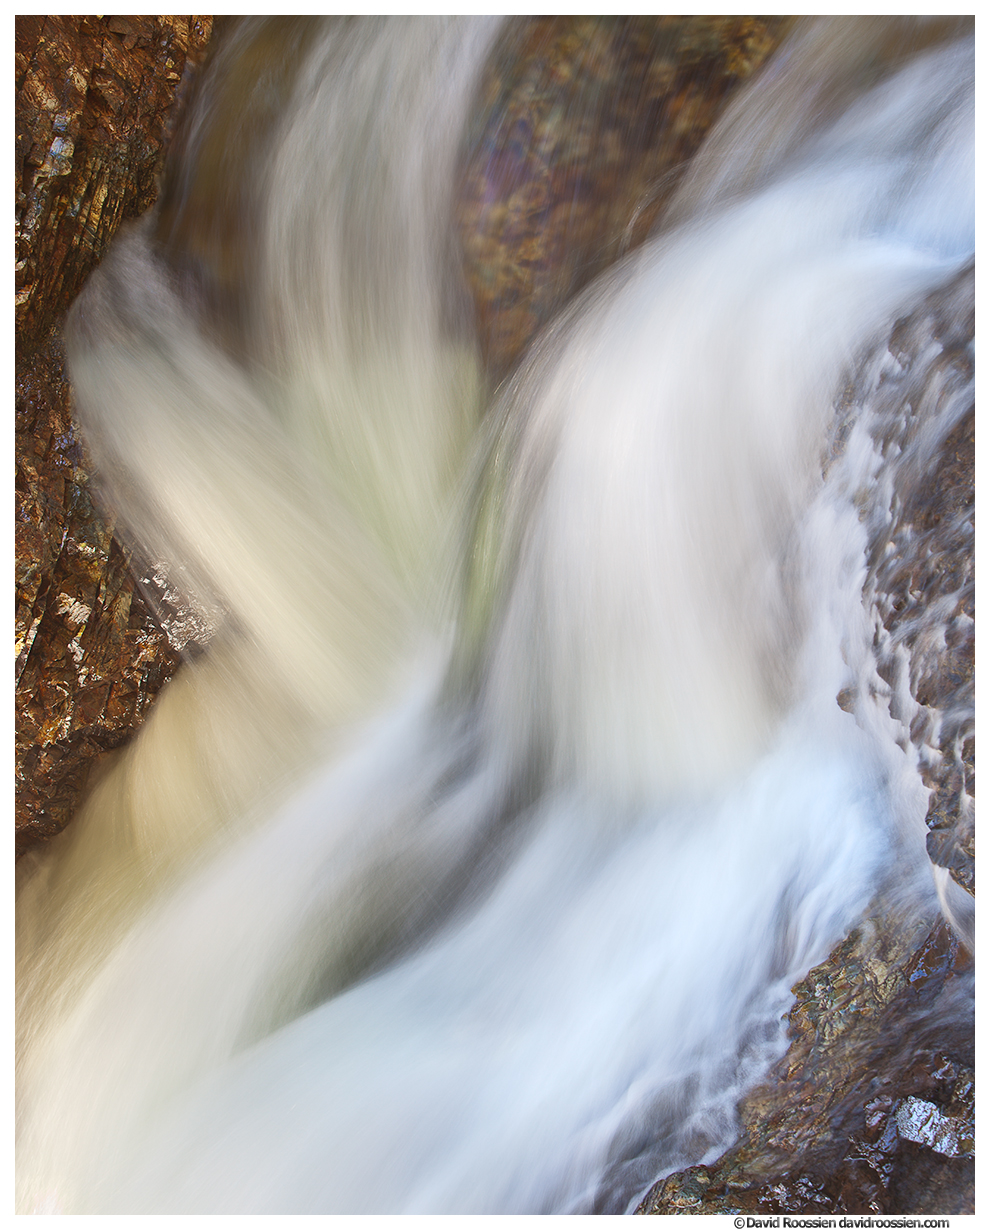 Spring Flows, Franklin Falls, Denny Creek, Snoqualmie Pass, Washington State, Spring 2016